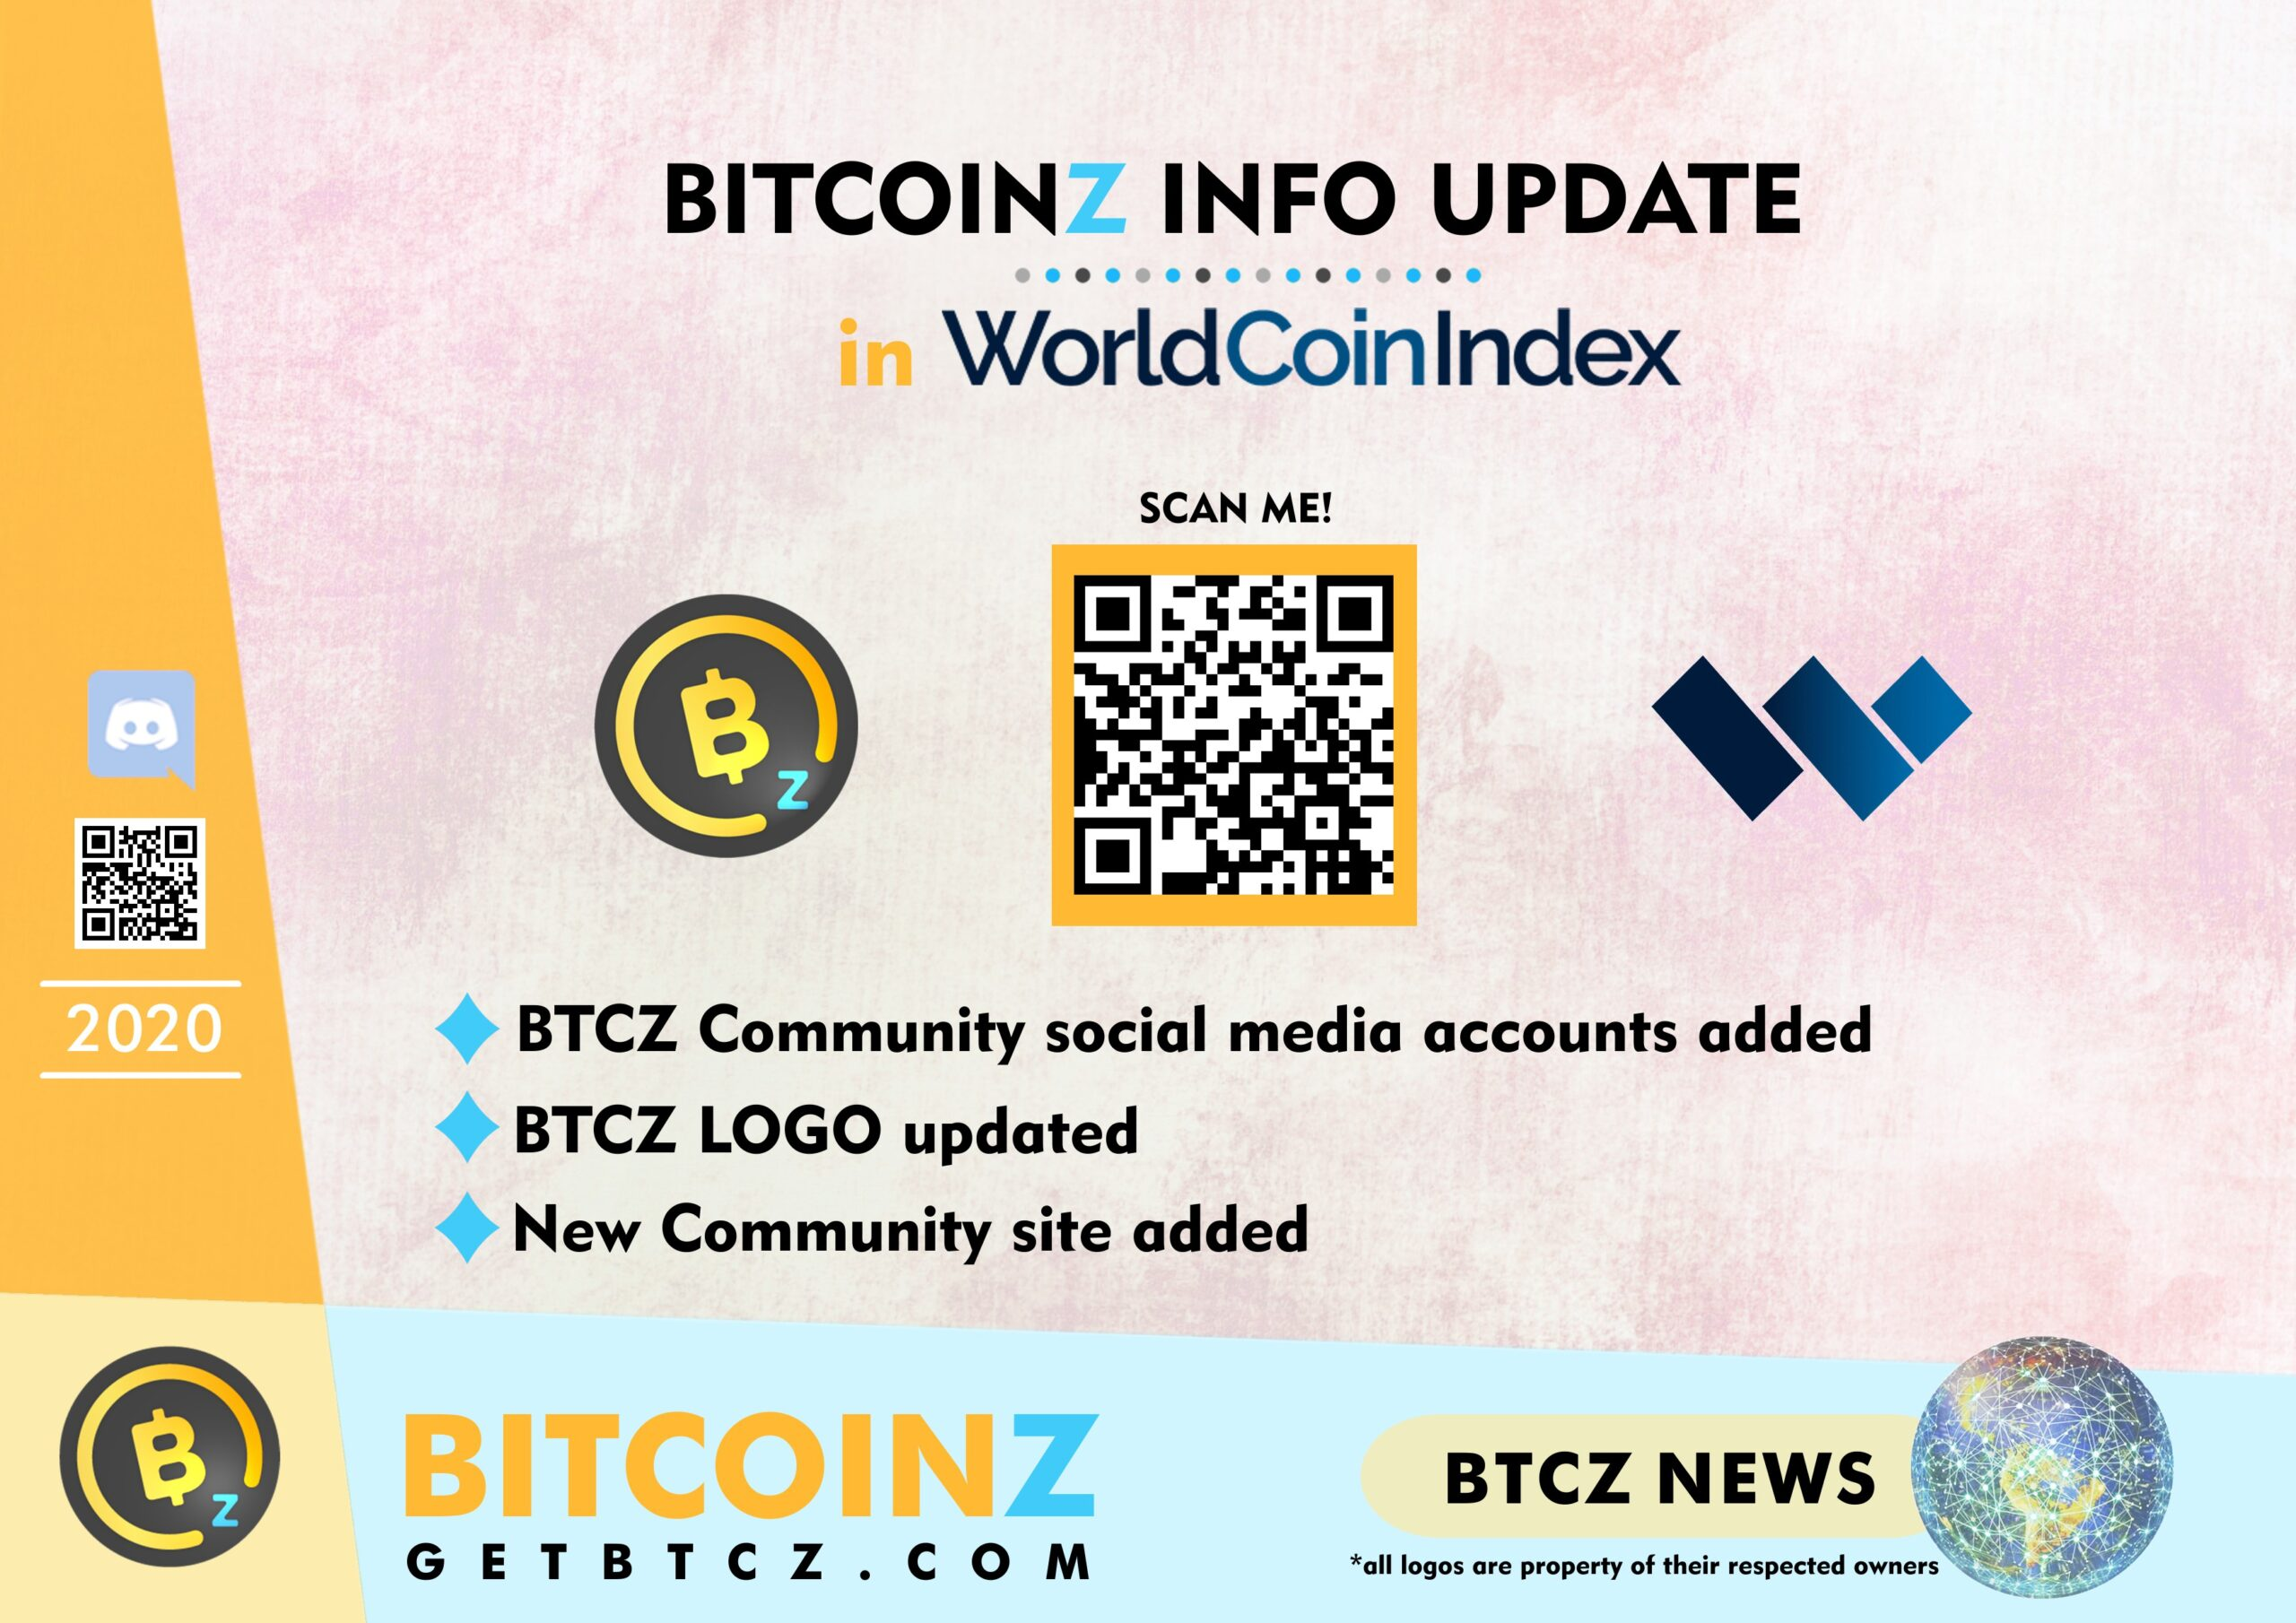 BITCOINZ Update in the WorldCoinIndex